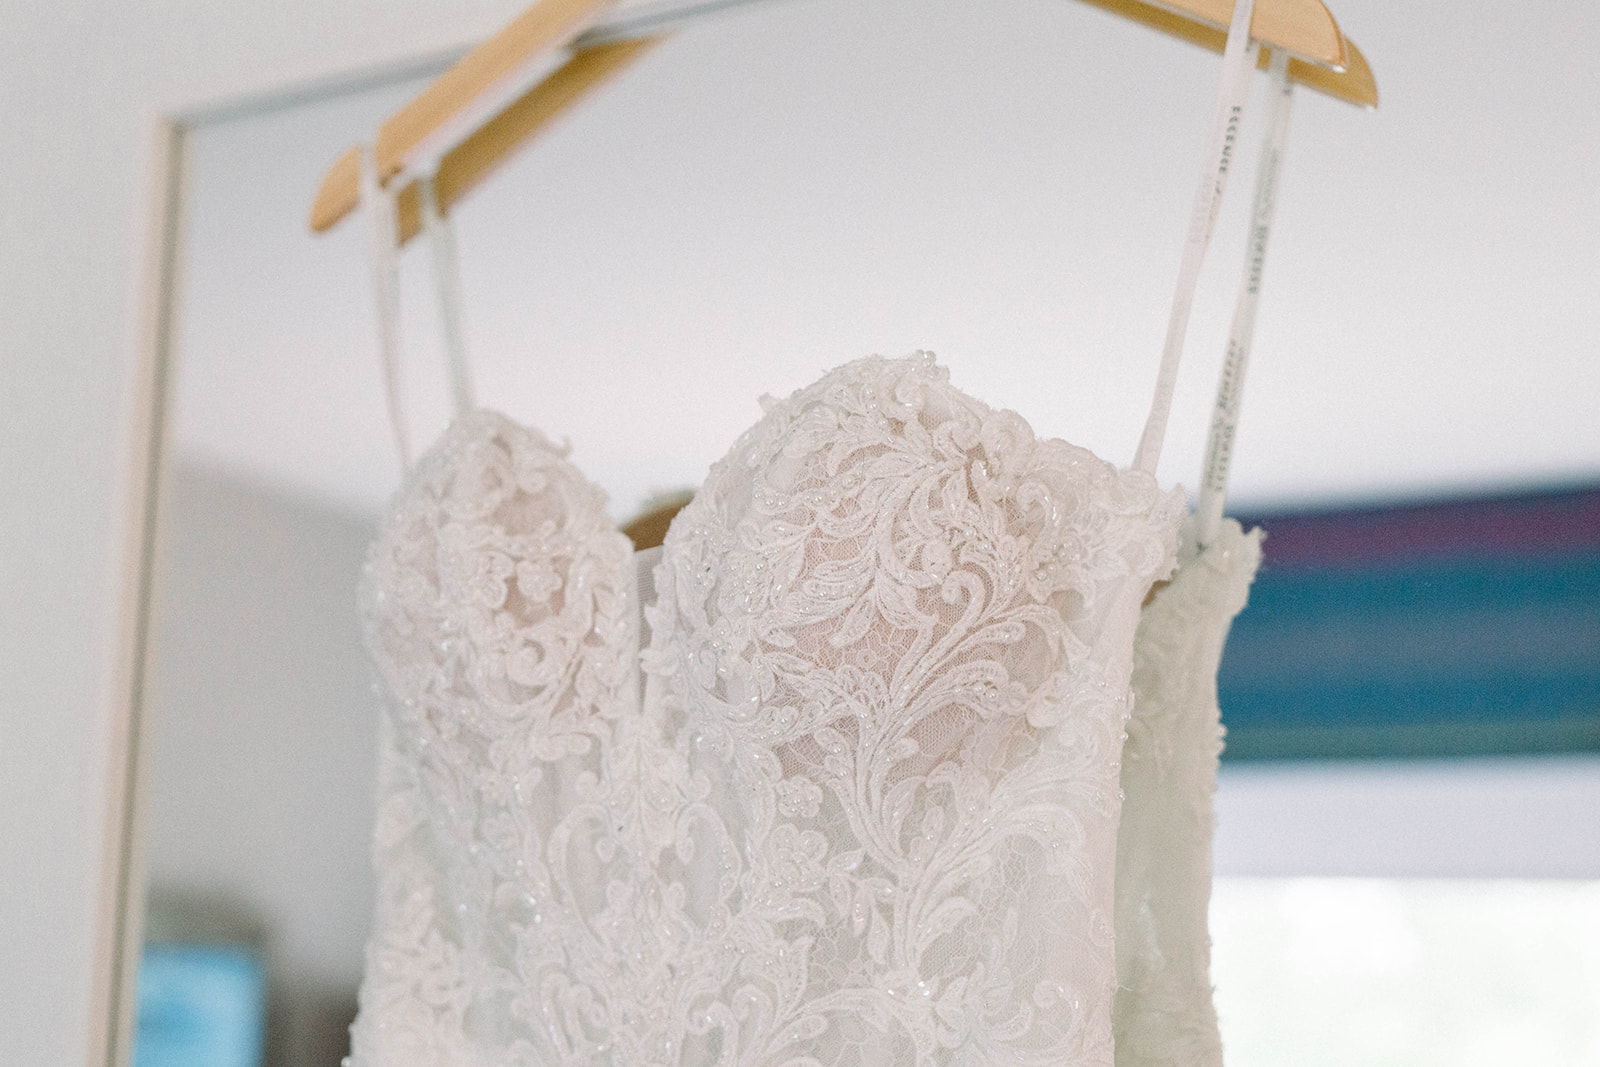 Lace Wedding Dress with Sweetheart Neckline featured on JPC Event Group